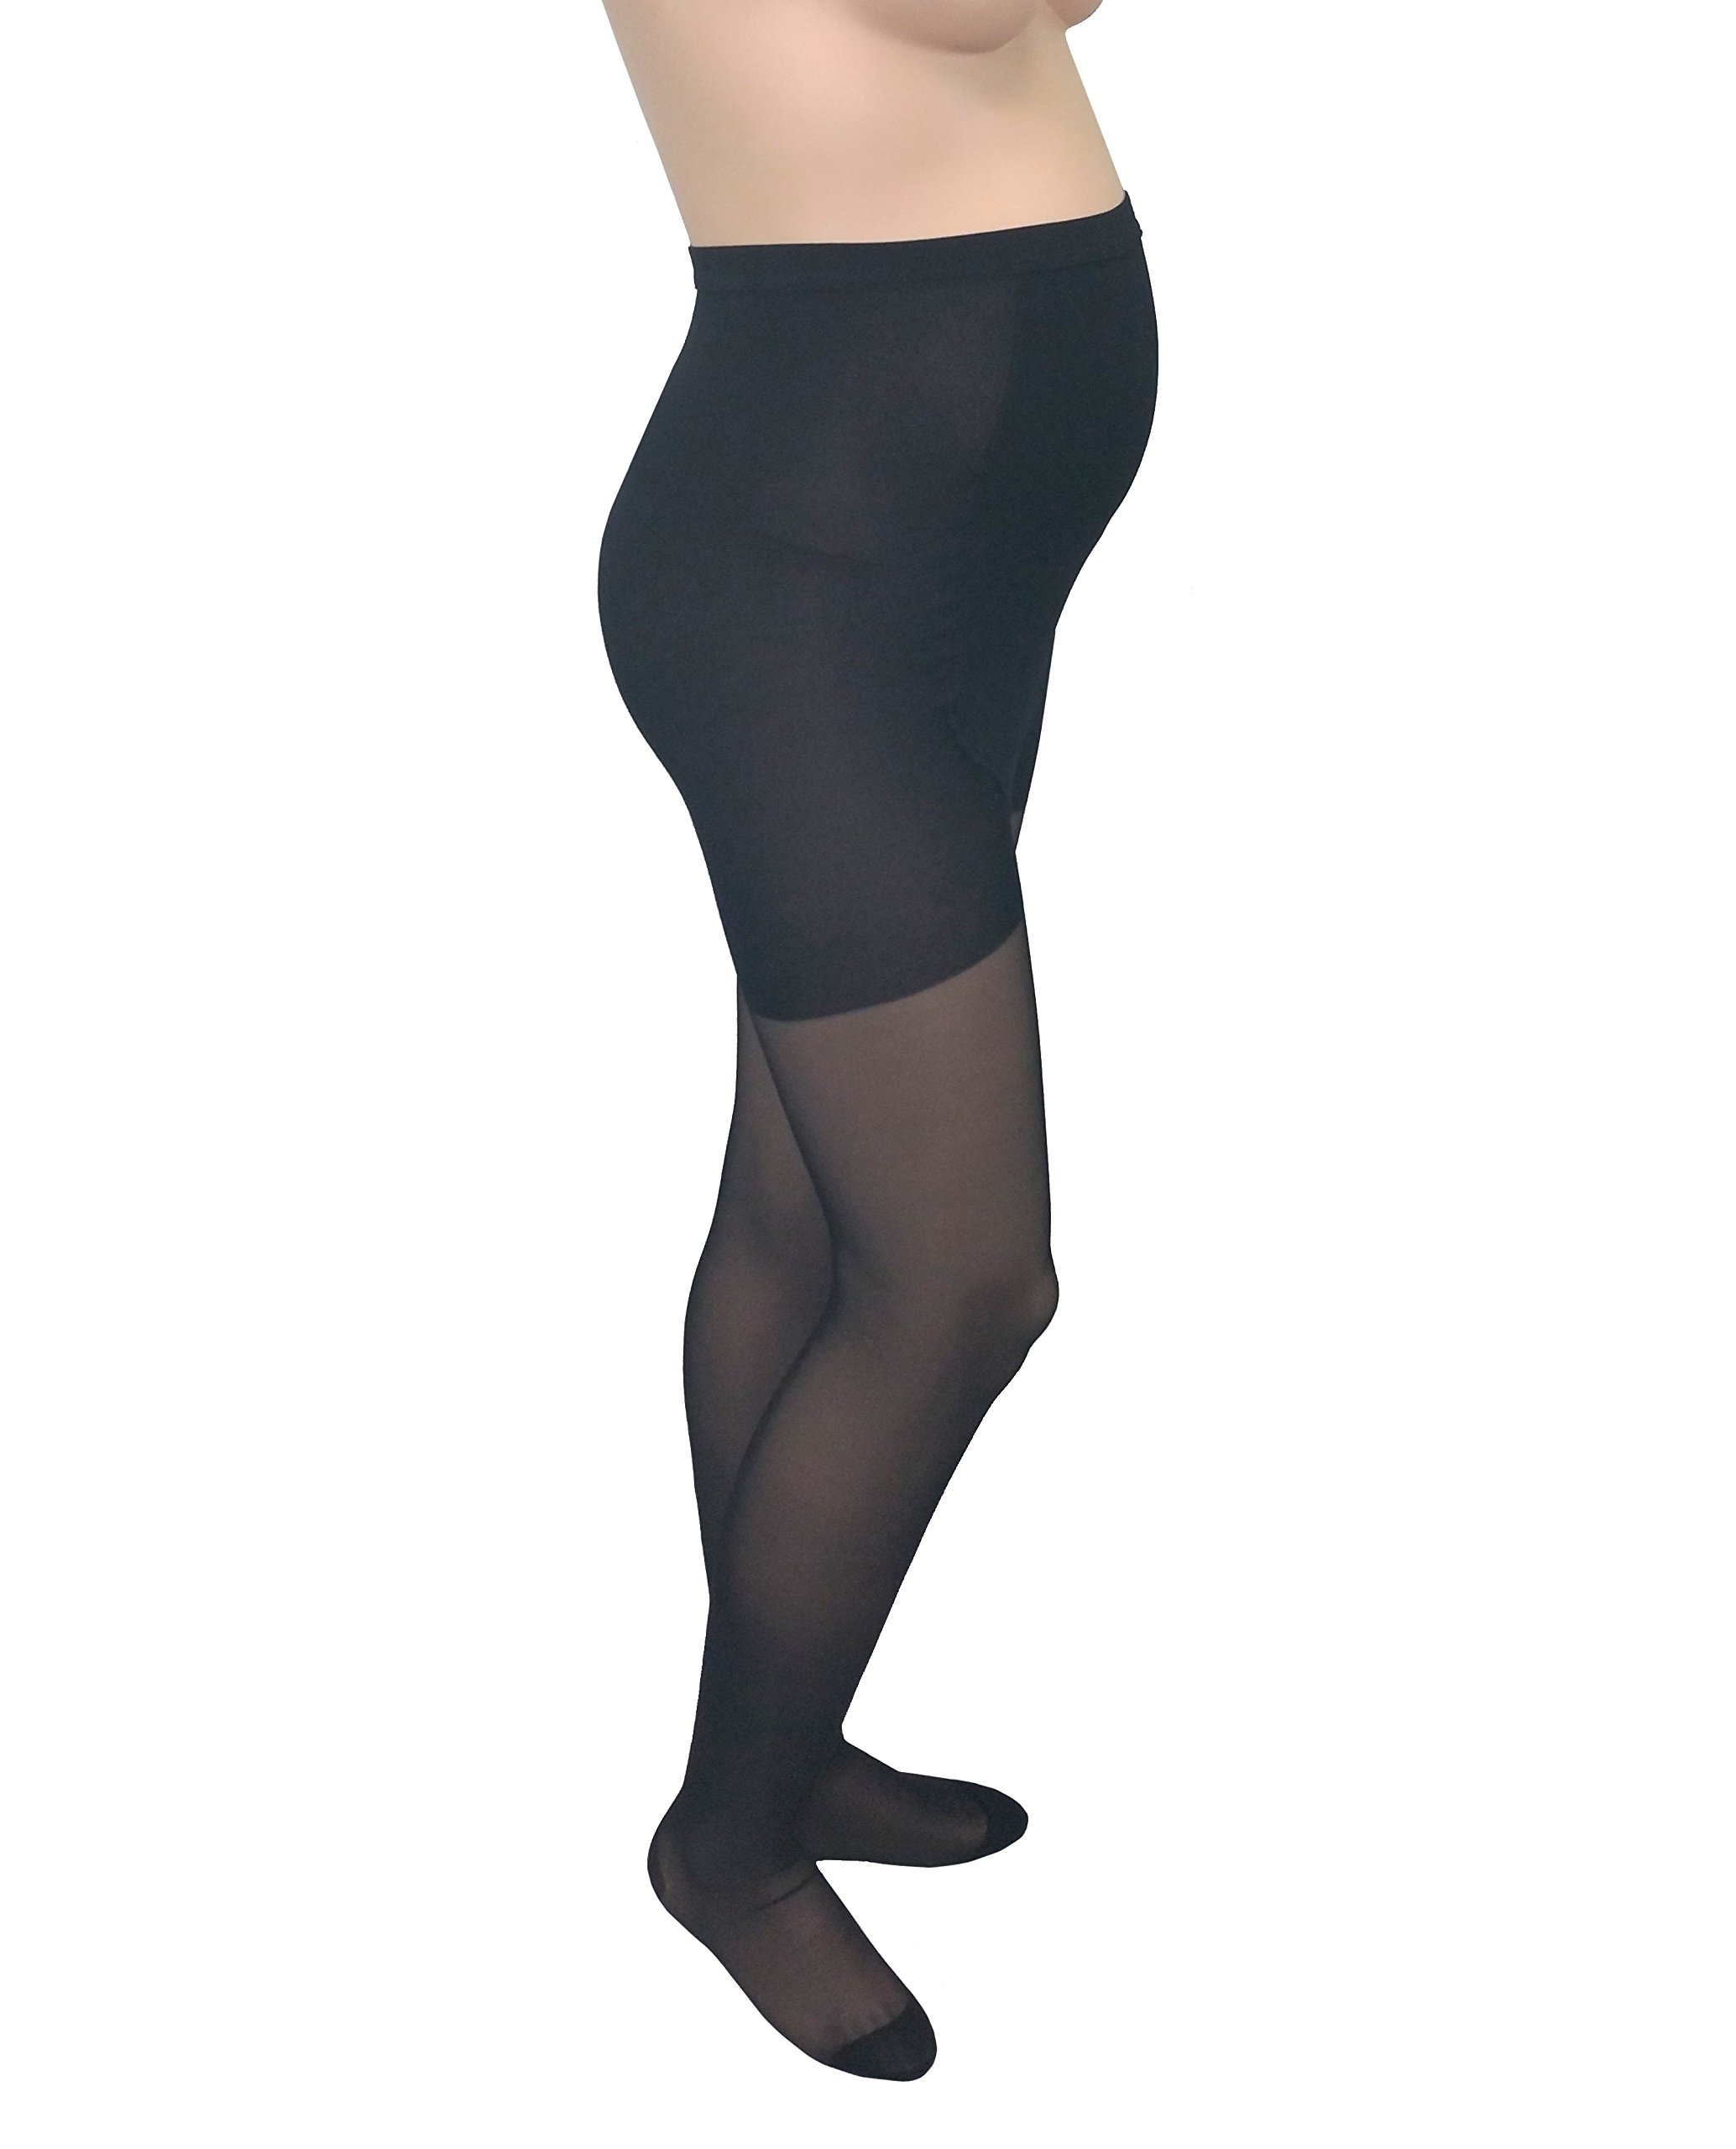 GABRIALLA Maternity Graduated Compression Pantyhose 2 Pack (20-22 mmHg) H-260: Medium Black